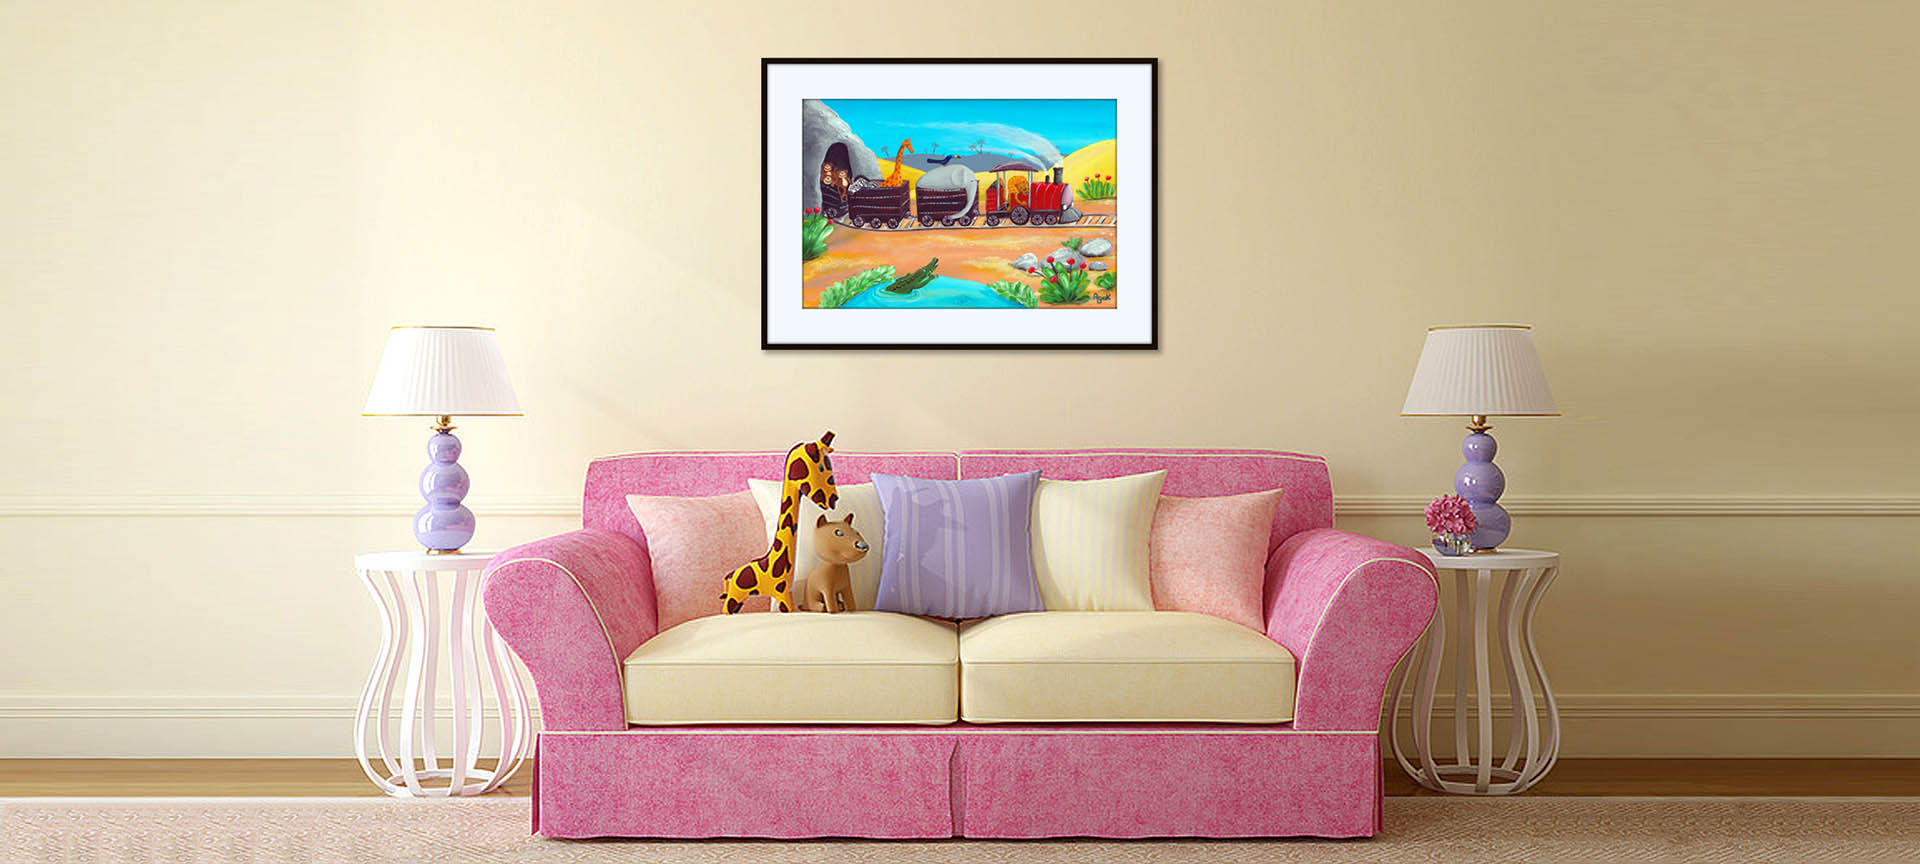 Jungle animals picture above a red sofa.